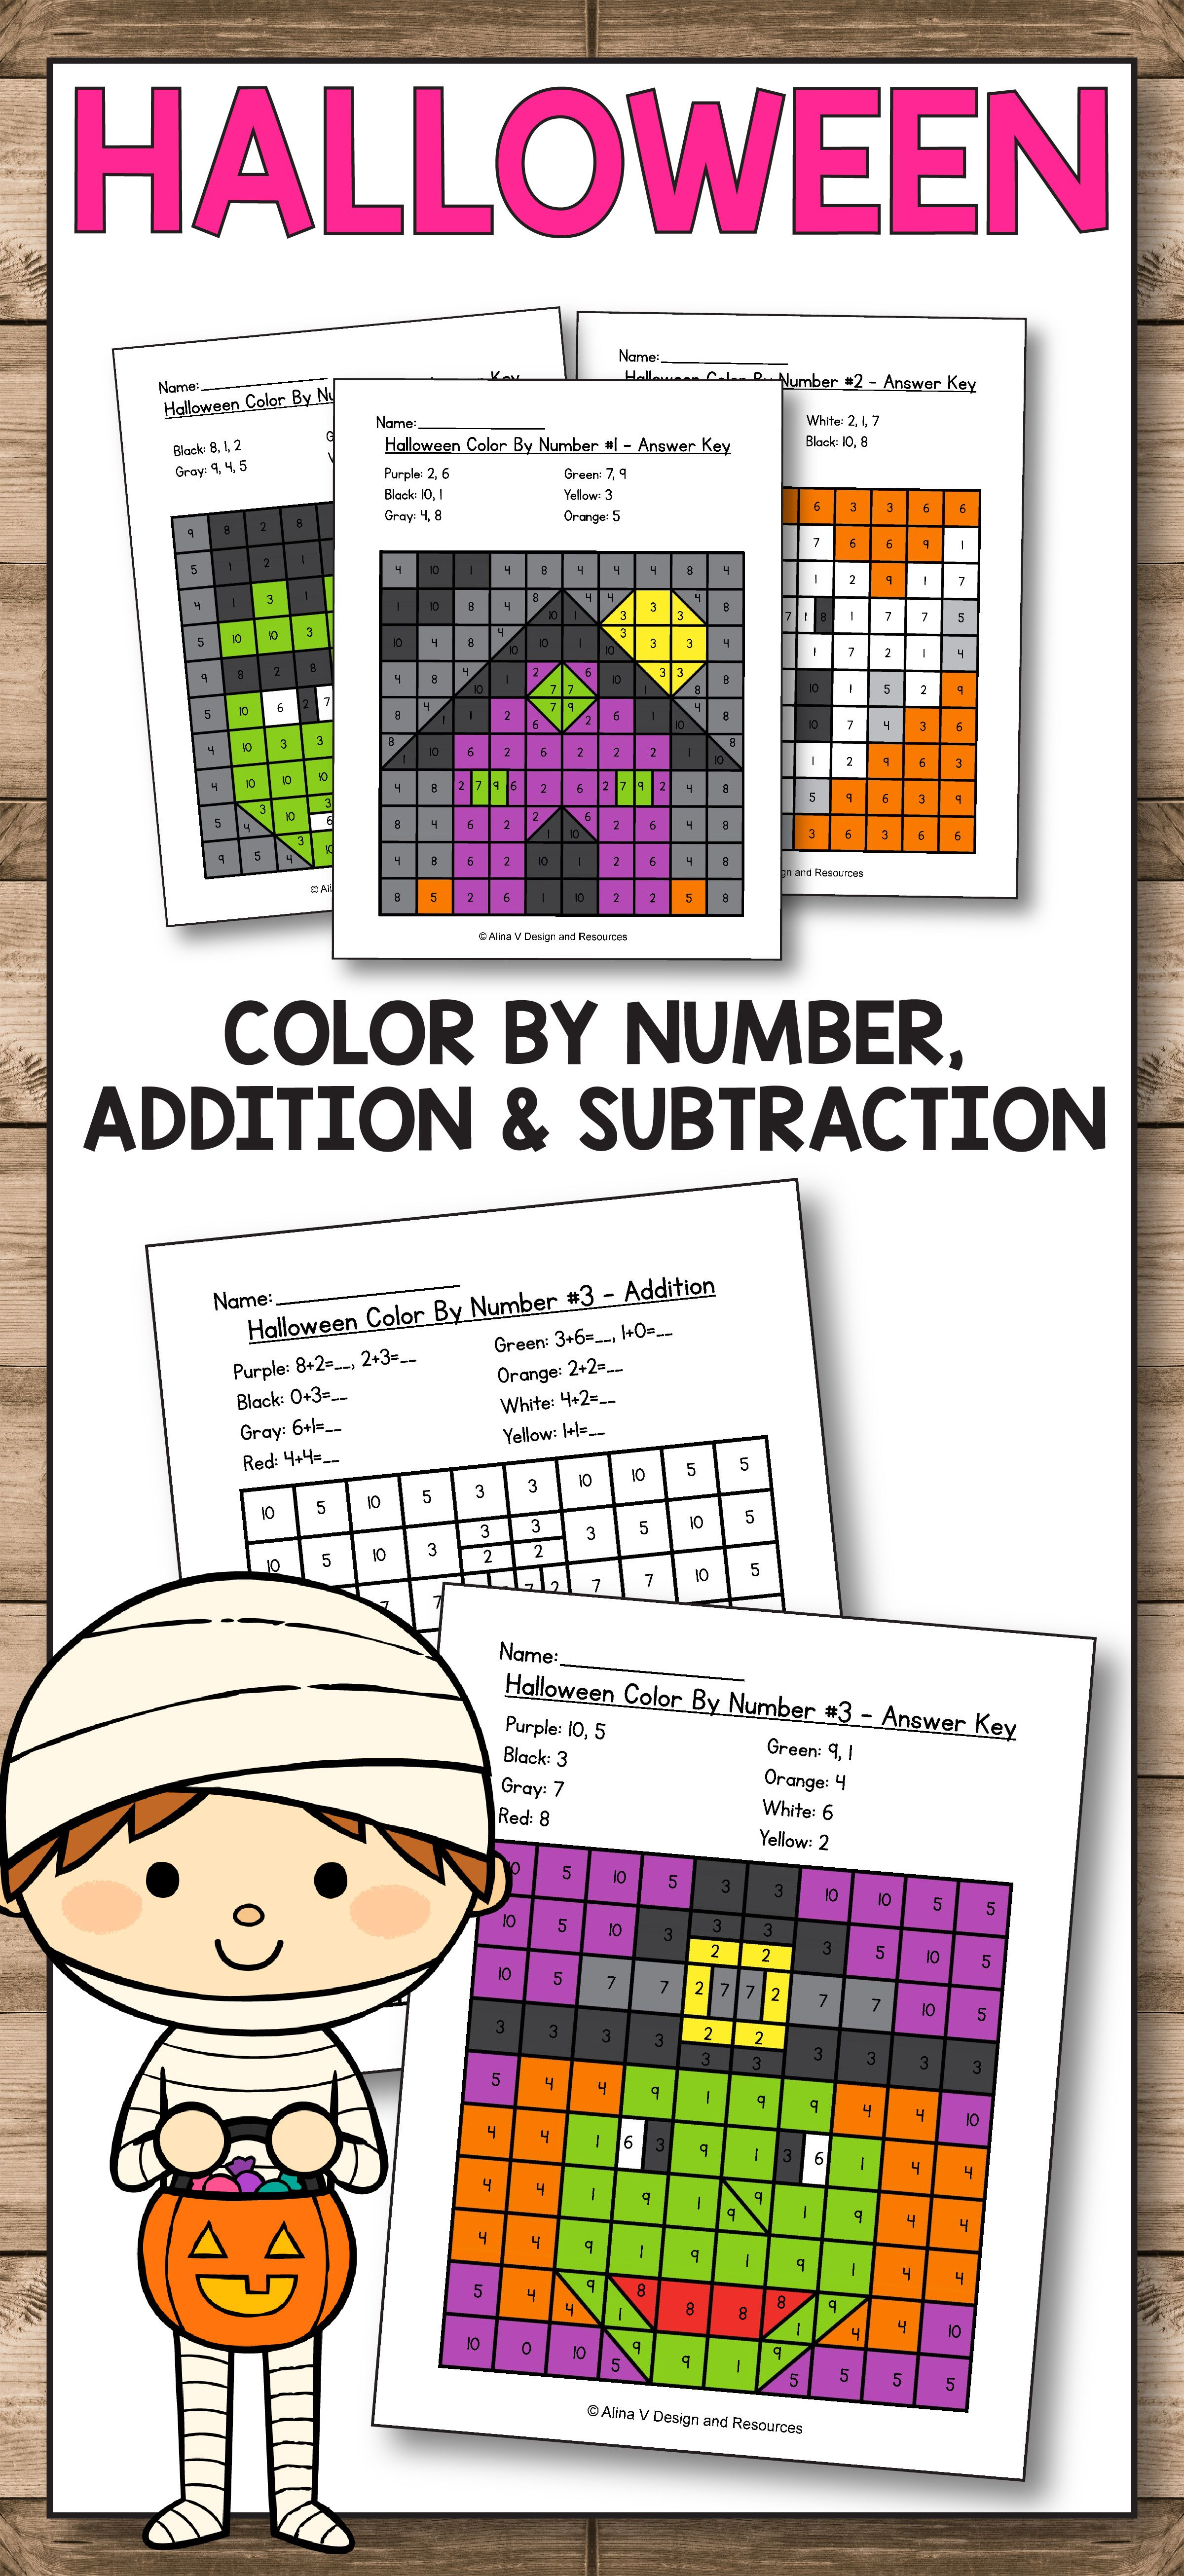 hight resolution of Halloween Color By Number - Halloween Math Worksheets   Halloween math  worksheets